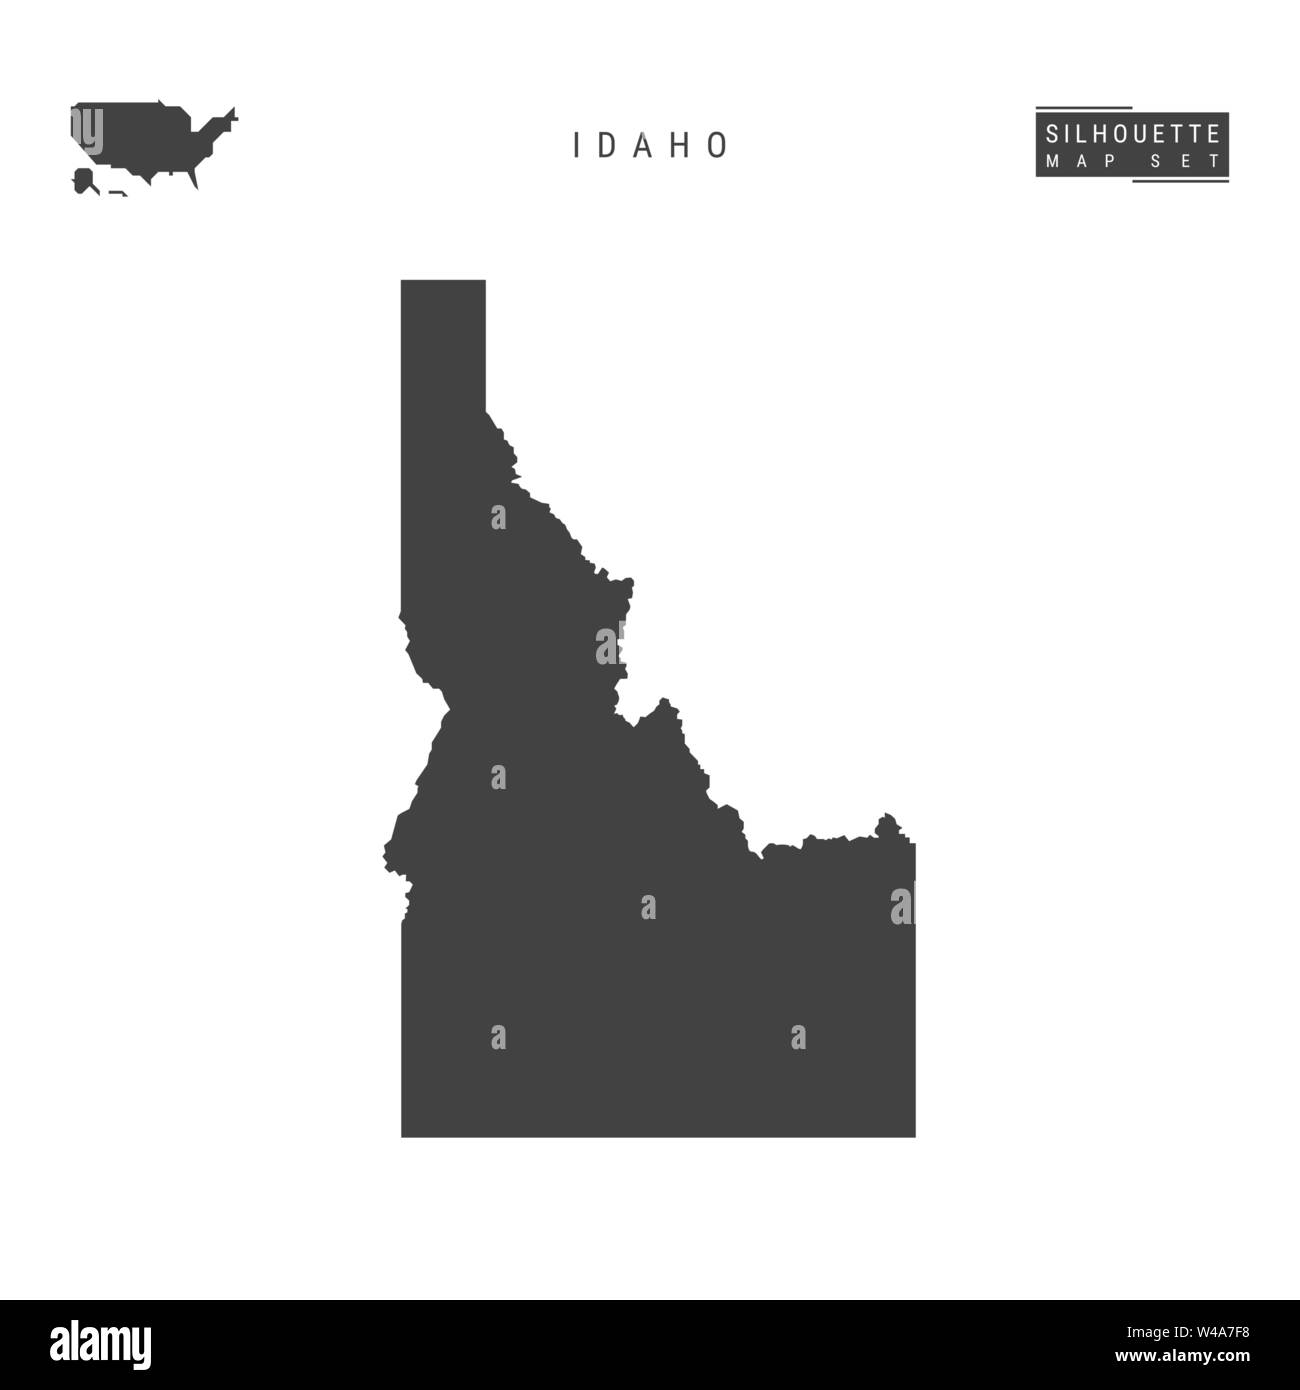 Idaho US State Blank Vector Map Isolated on White Background ...